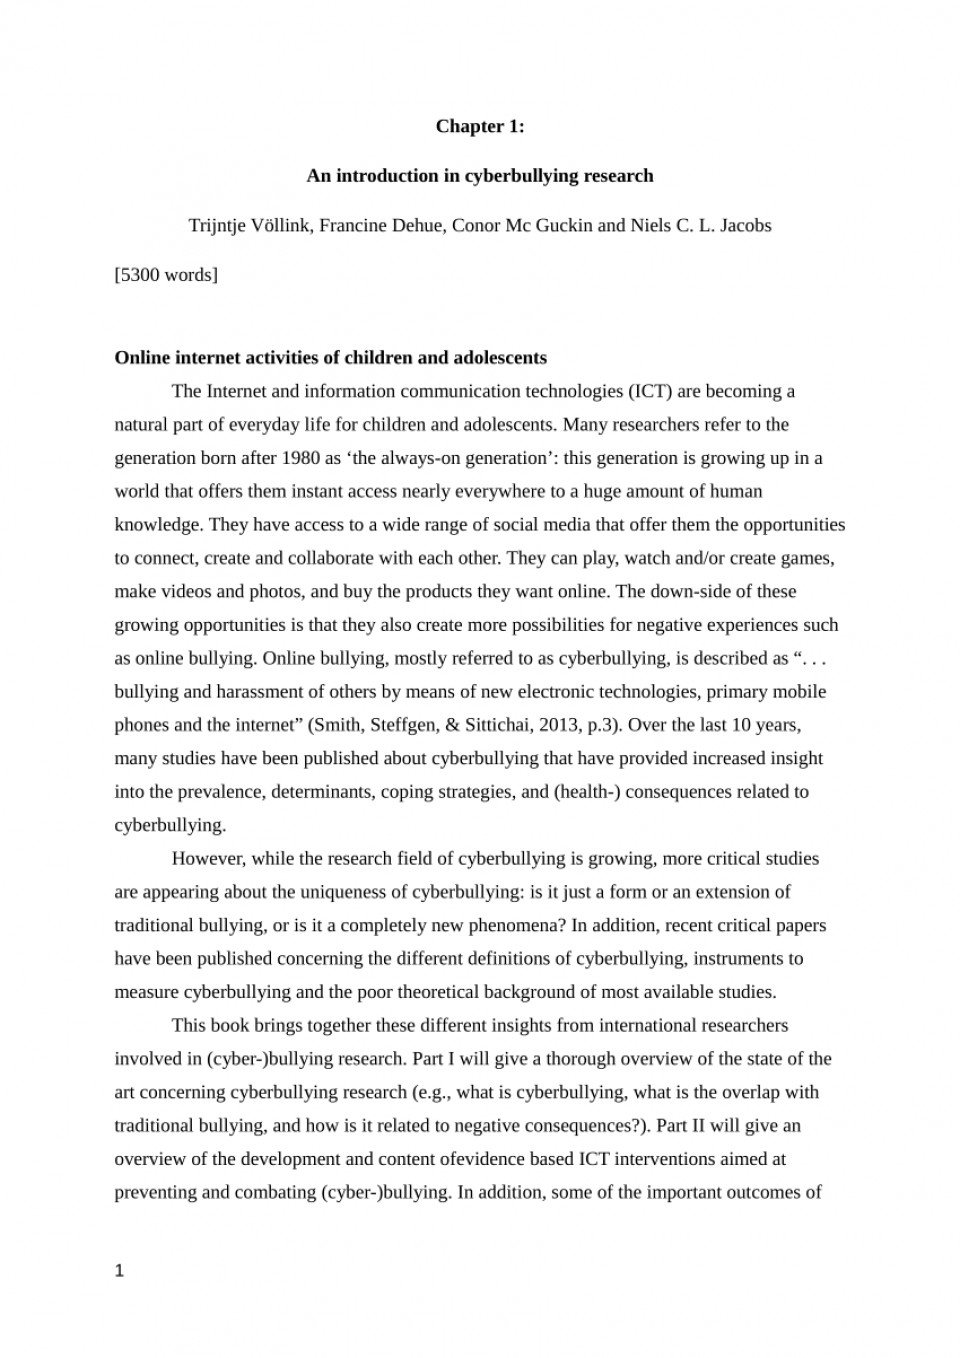 001 Cyberbullying Research Paper Pdf Unique Effects Of 960